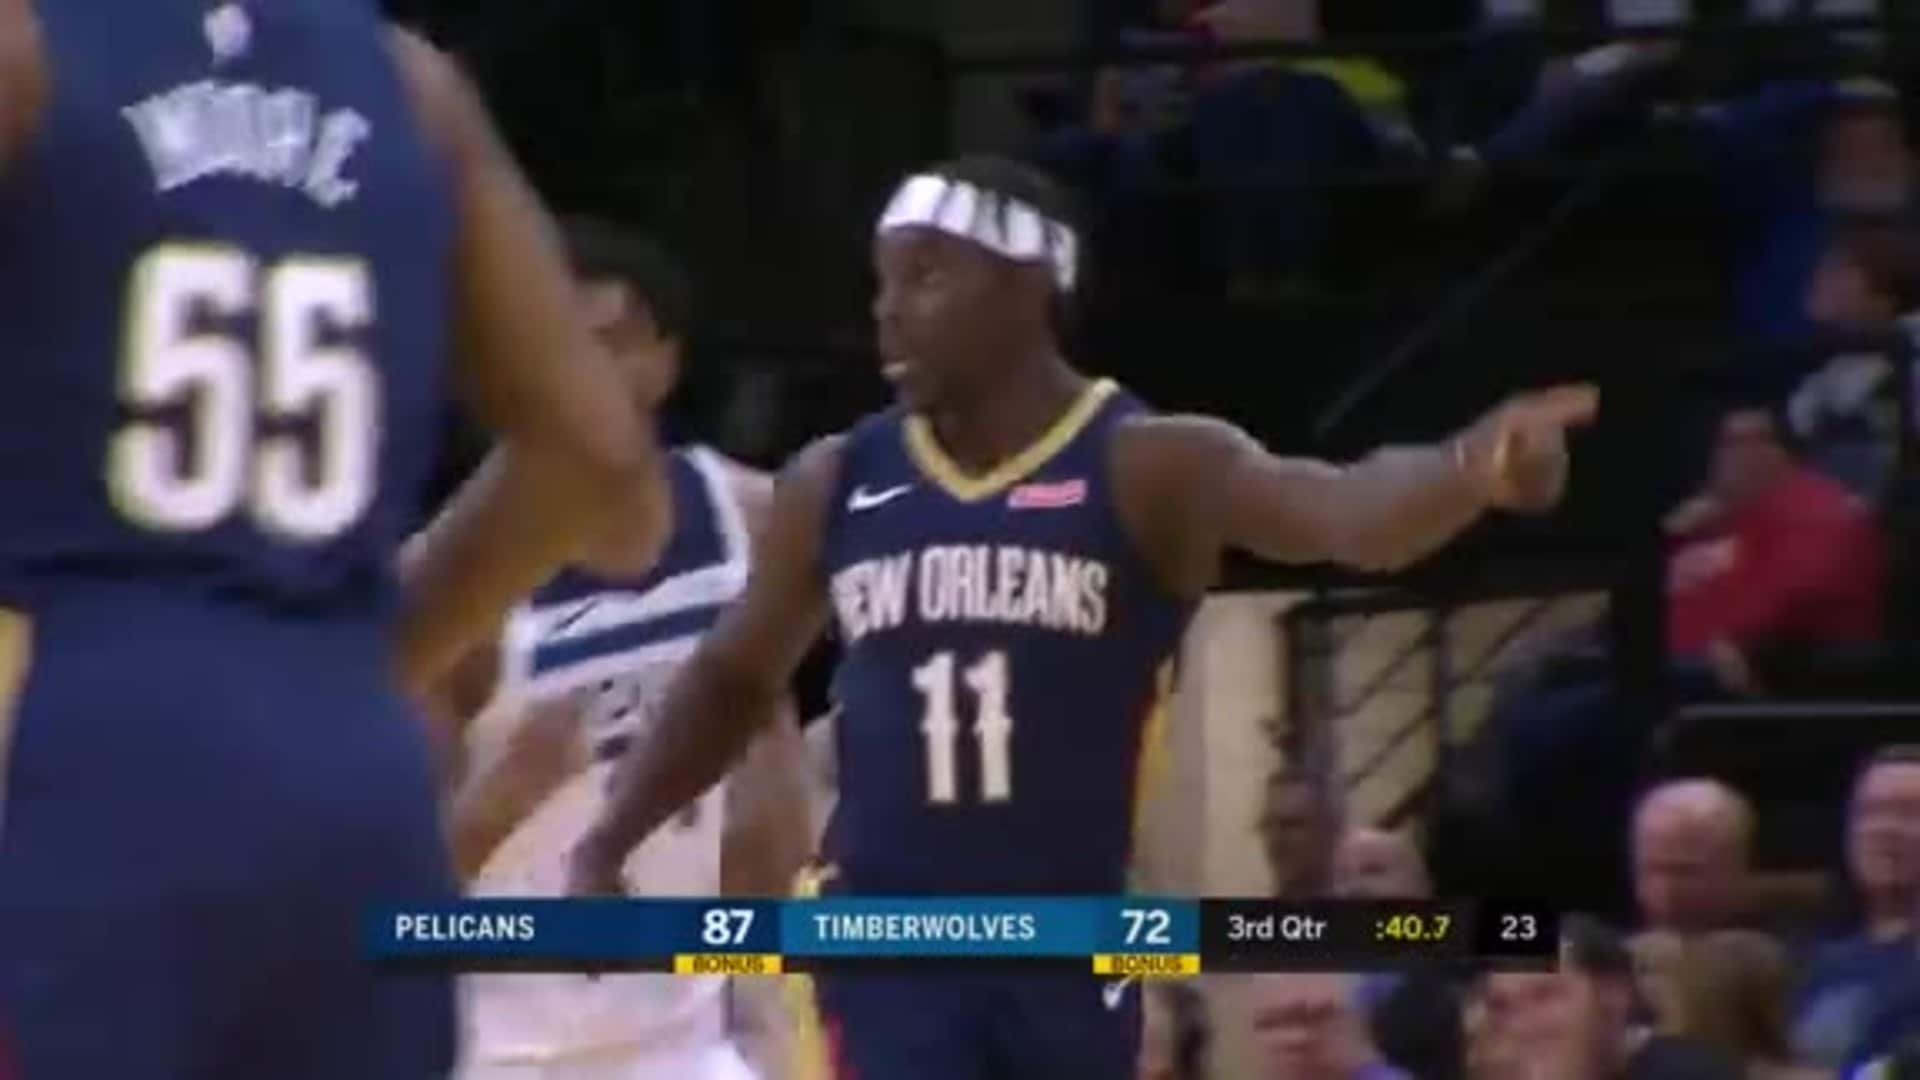 Pelicans vs. Timberwolves Highlights: Jrue Holiday sets franchise record for triples